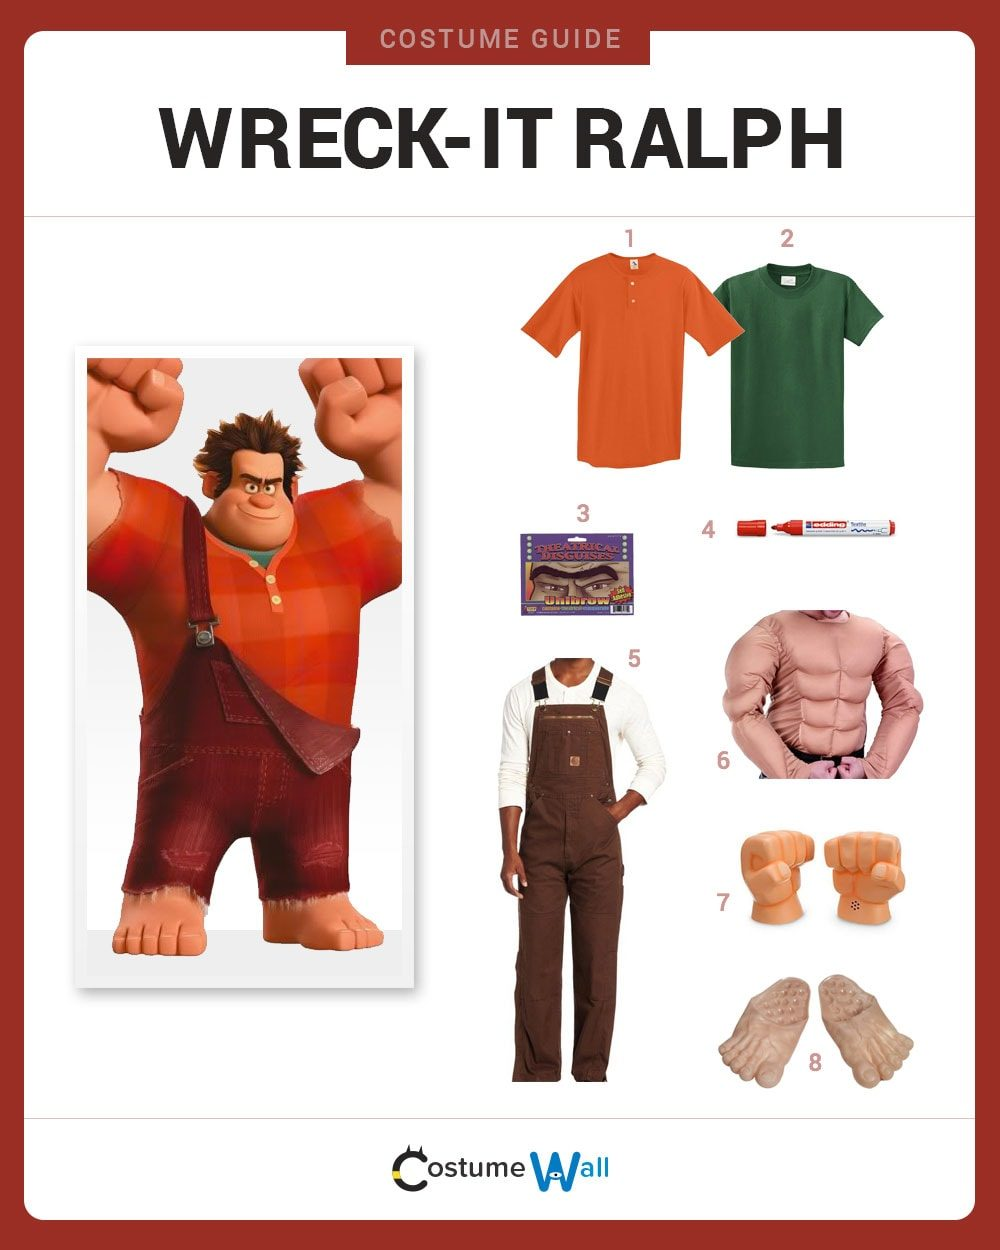 Dress Like WreckIt Ralph Costume  Halloween and Cosplay Guides